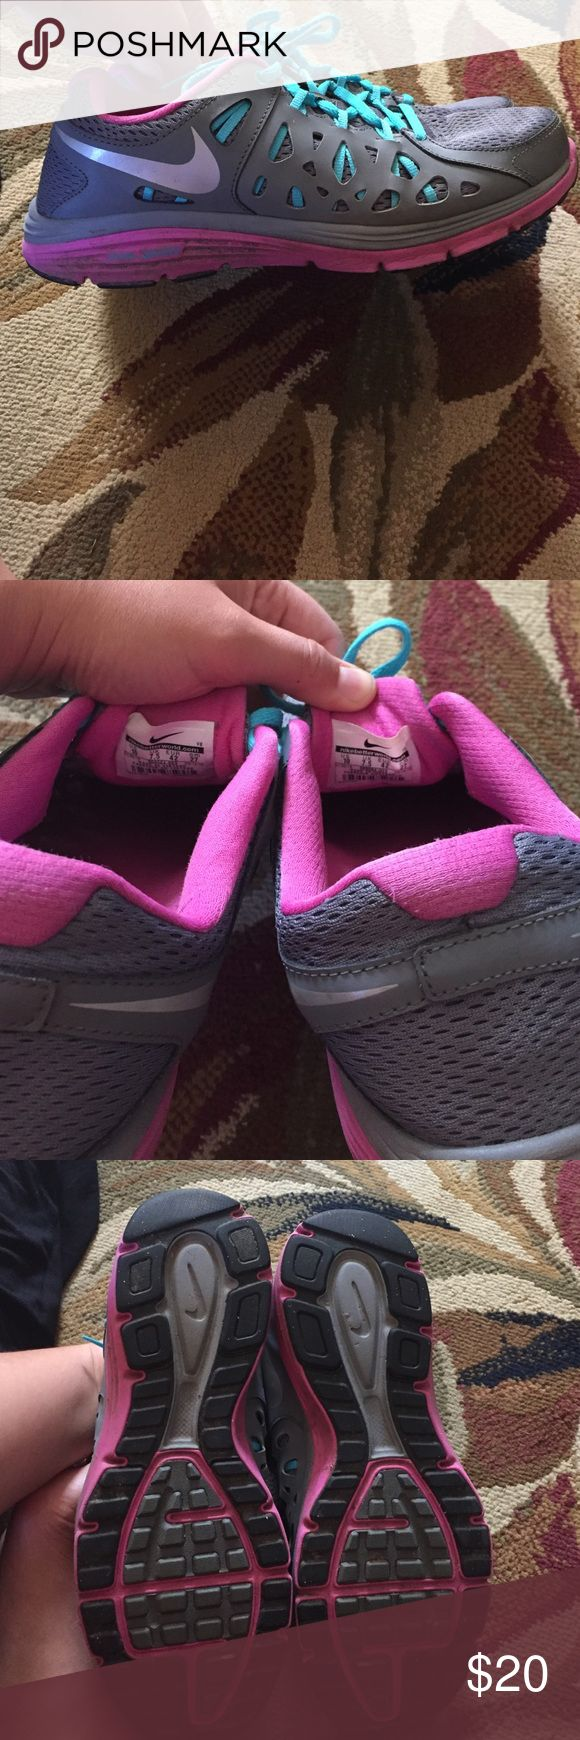 Used condition Nike Dual Fusion Tennis Shoes Nike dual fusion Tennis Shoes in good used condition. They have dirt stains on the bottom purple part and slightly on the mesh part of the right shoe. Not noticeable at all. These have lots of life left! Nike Shoes Athletic Shoes